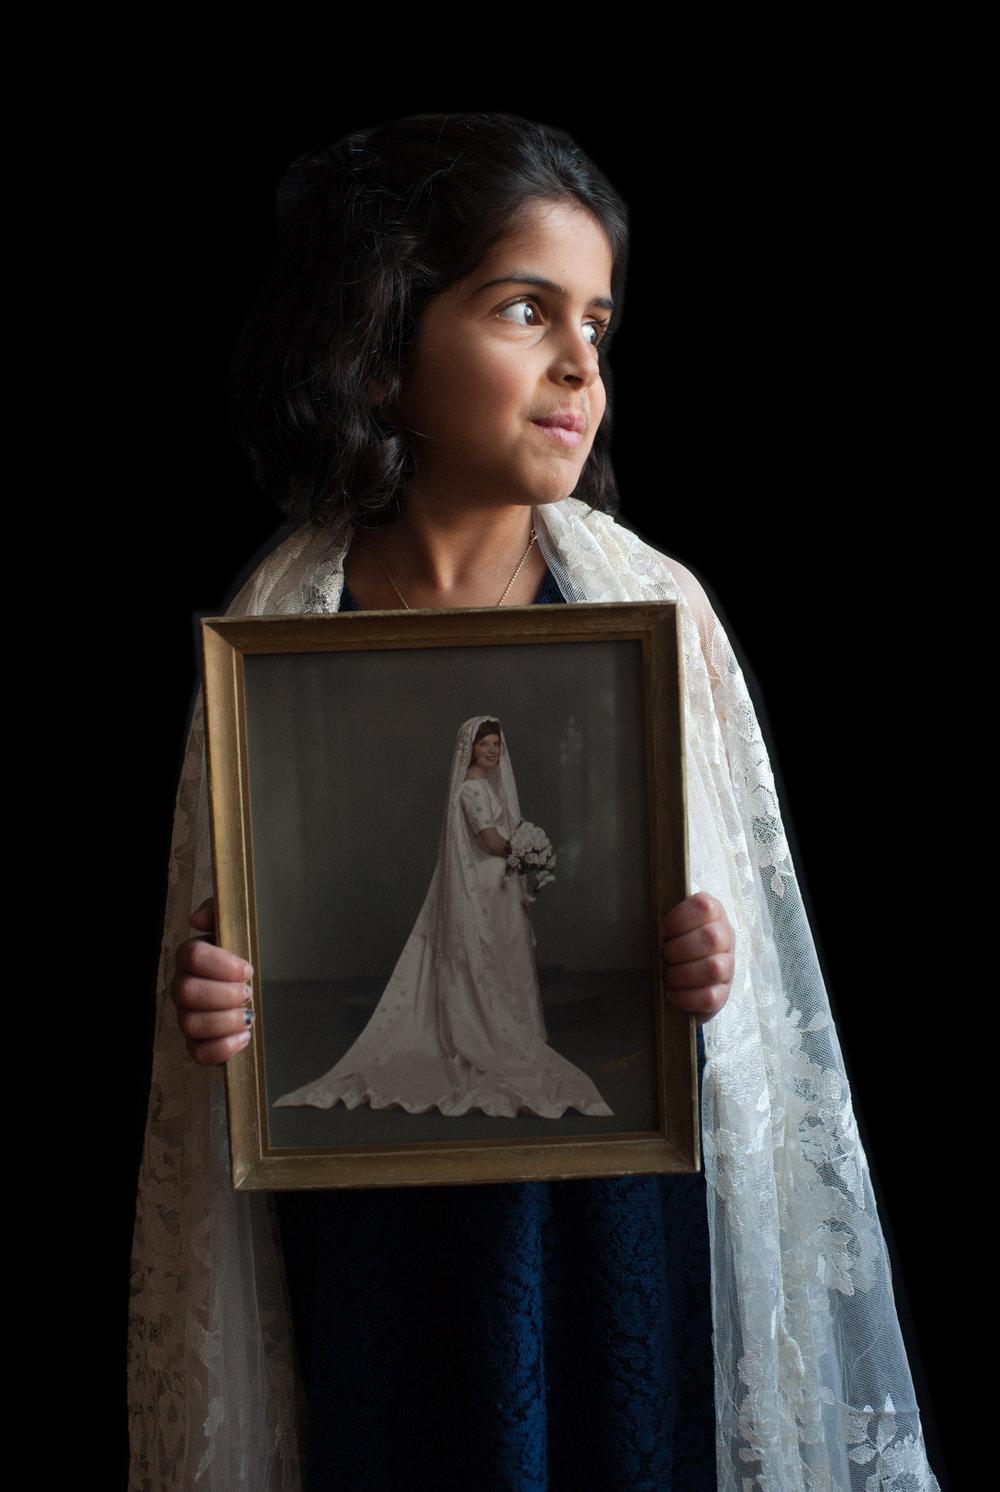 Amelia wears Charlotte's wedding mantilla and holds Charlotte's wedding portrait.